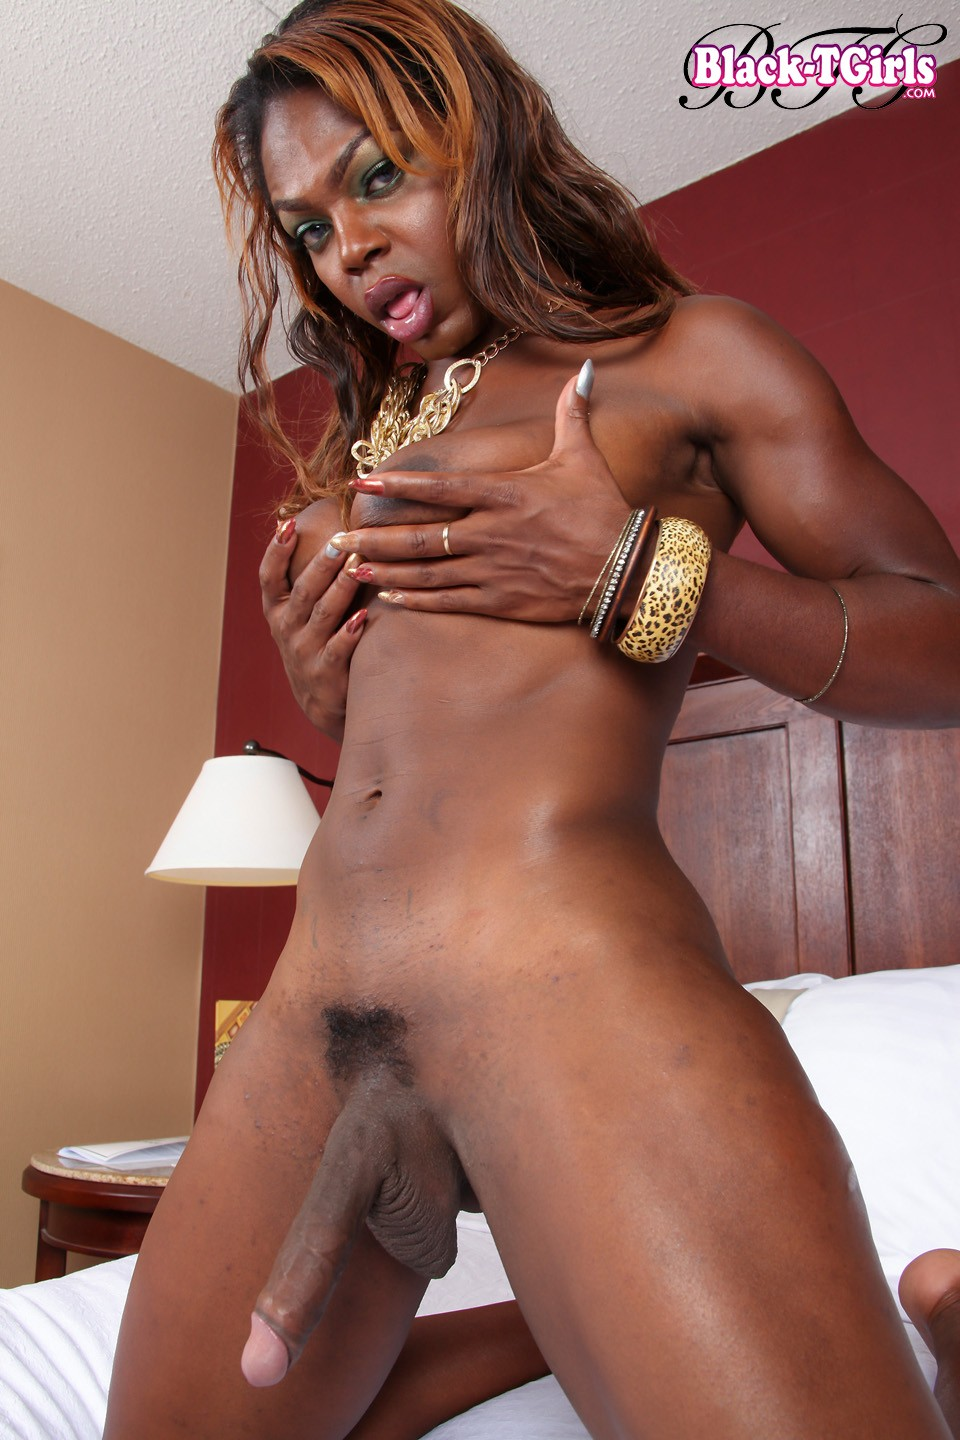 blackcocks shemale angel